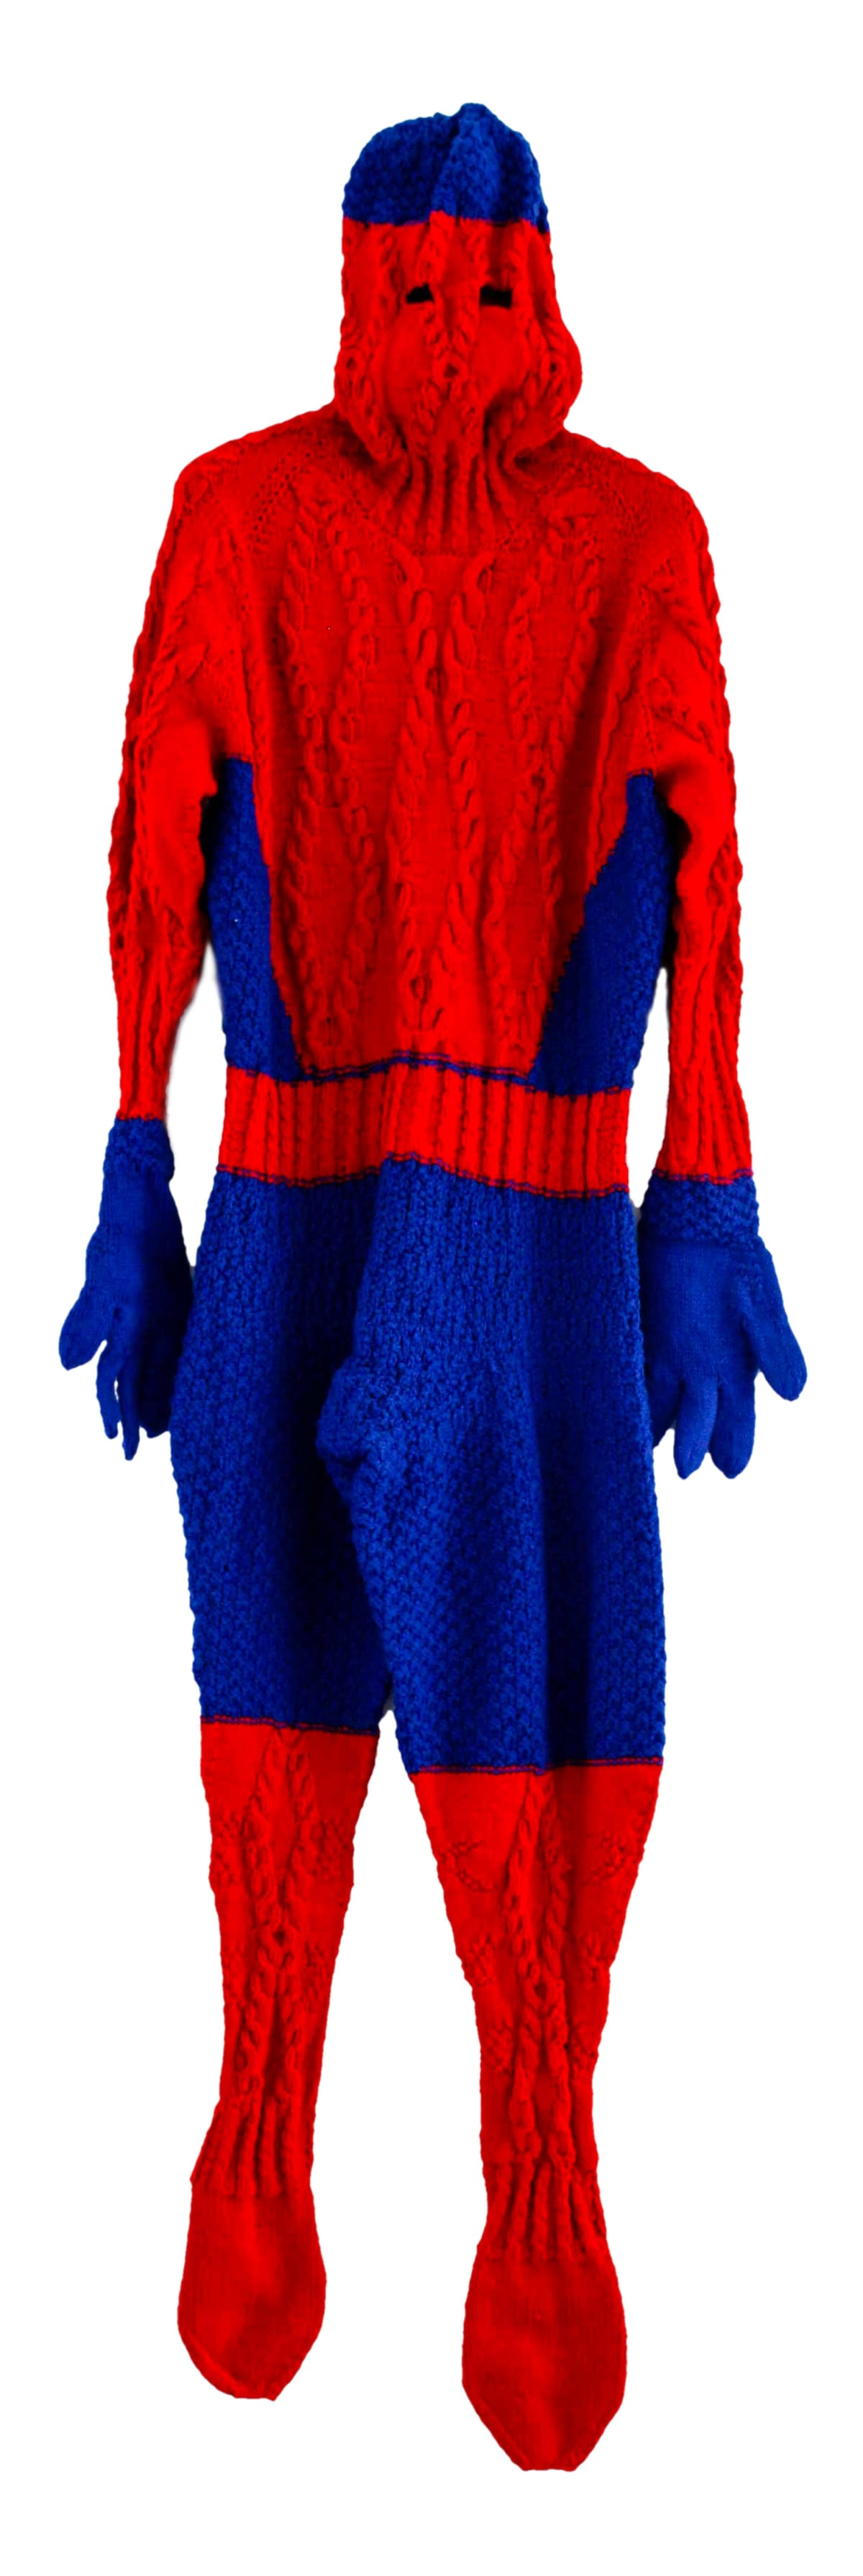 Mark Newport, Sweaterman 5, hand-knit acrylic with buttons